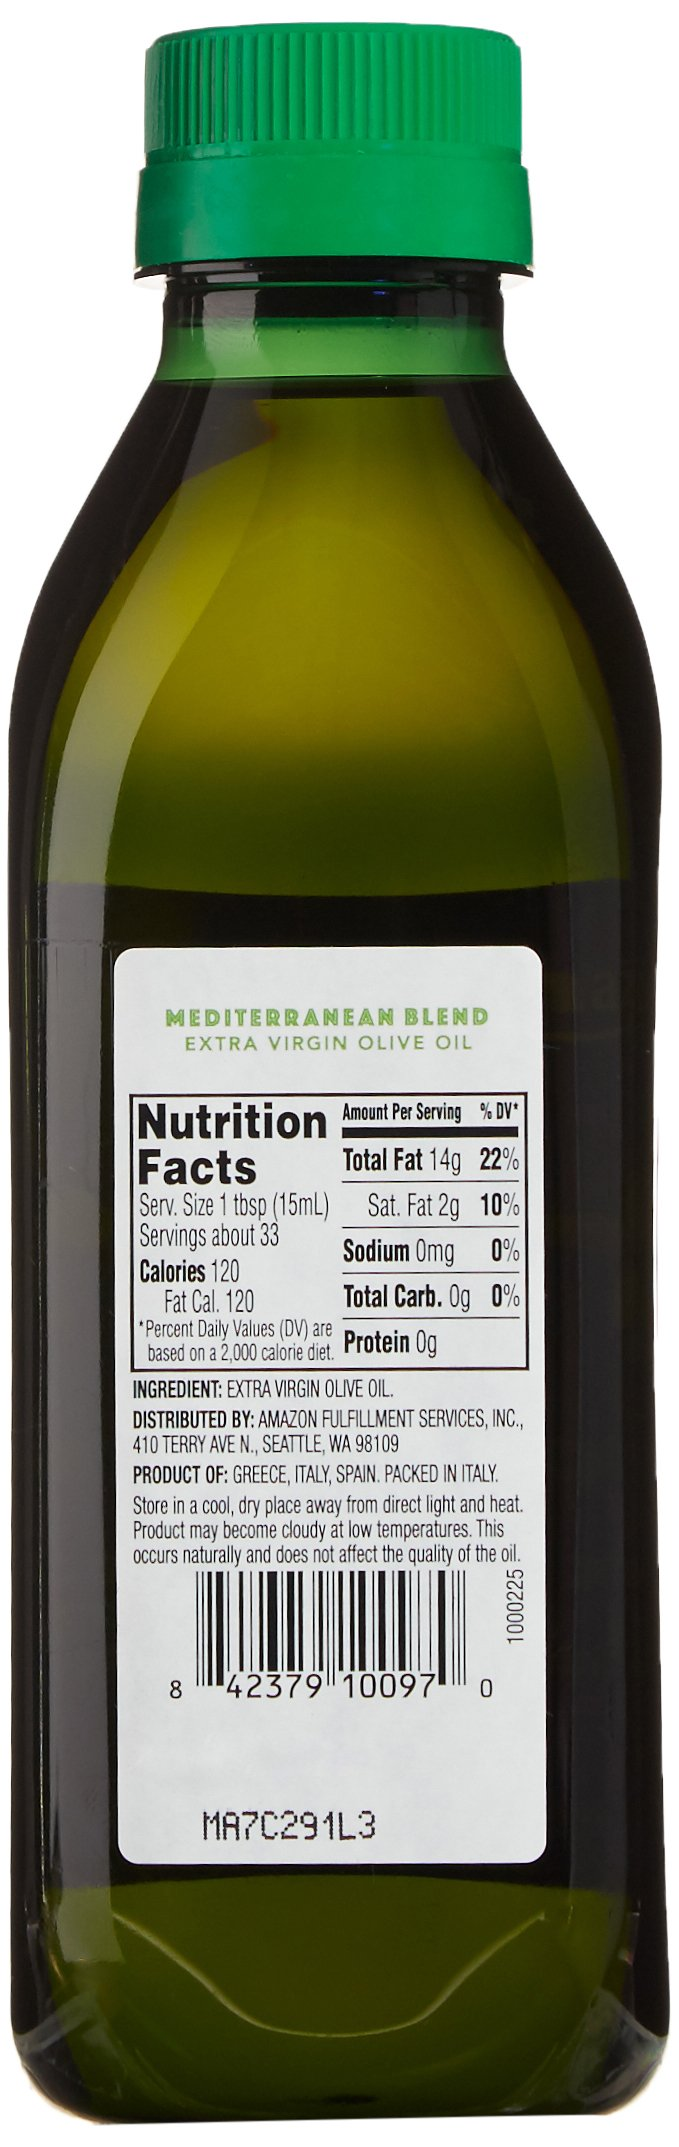 AmazonFresh Mediterranean Extra Virgin Olive Oil, 16.9 fl oz (500mL) 5 Buttery, mild flavor Product of Greece, Italy and Spain Sourced from growers in the Mediterranean region; bottled in Italy